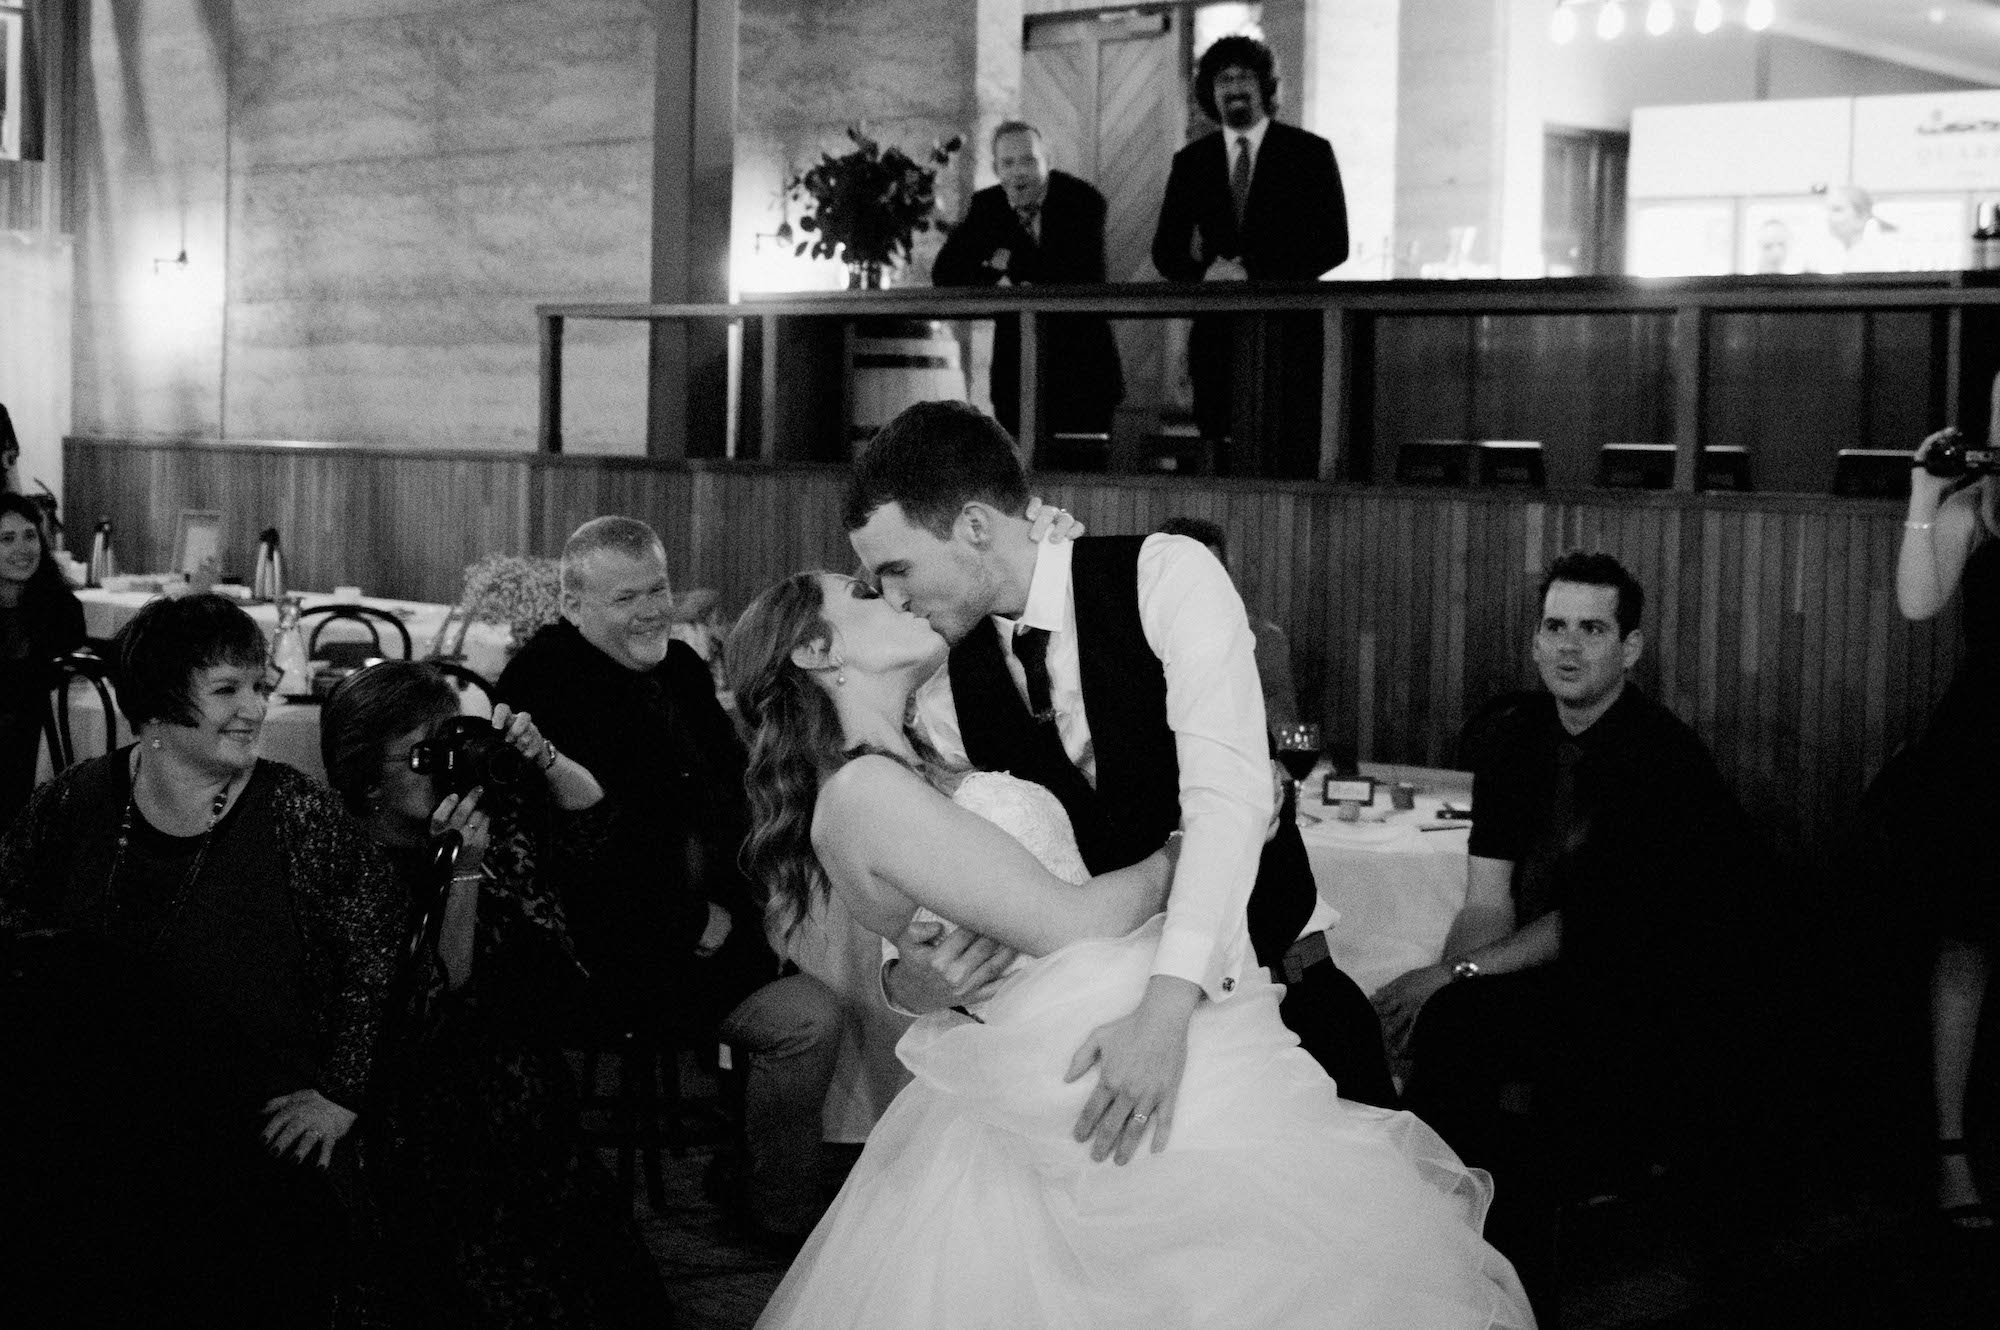 A black & white wedding photo of the groom kissing his bride during their first dance.